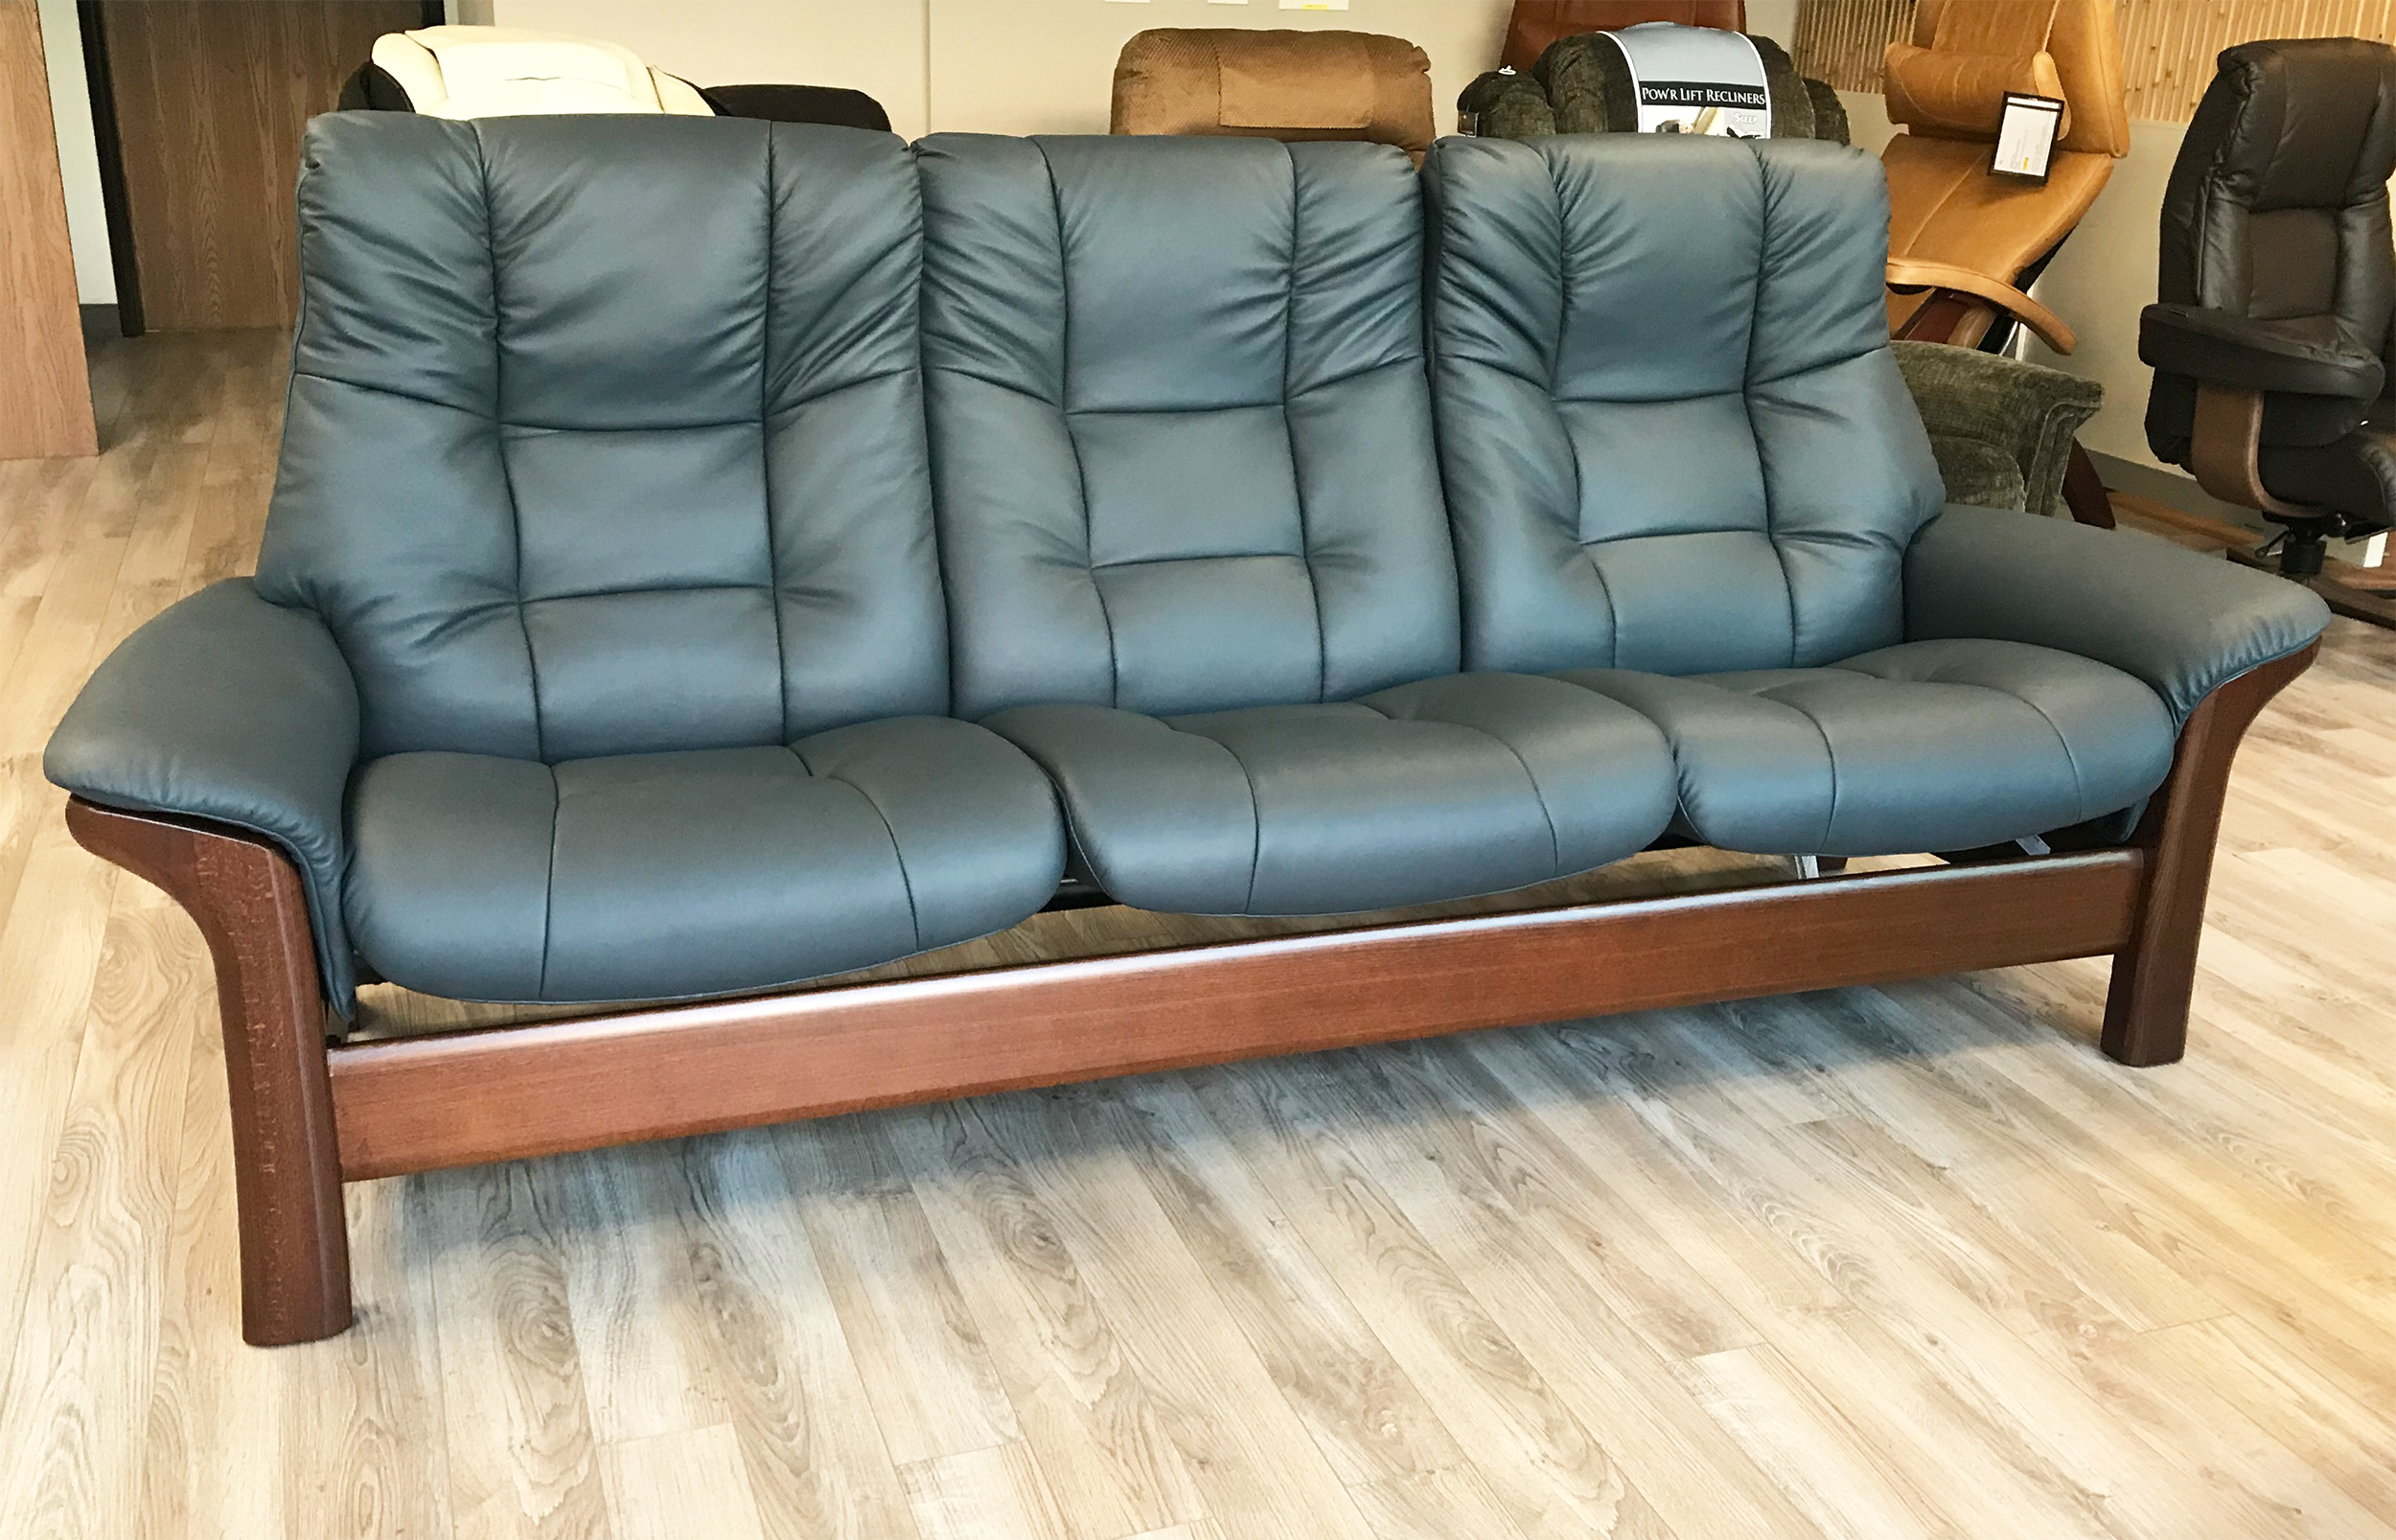 Stressless Buckingham 3 Seat High Back Sofa Paloma Shadow Blue ...